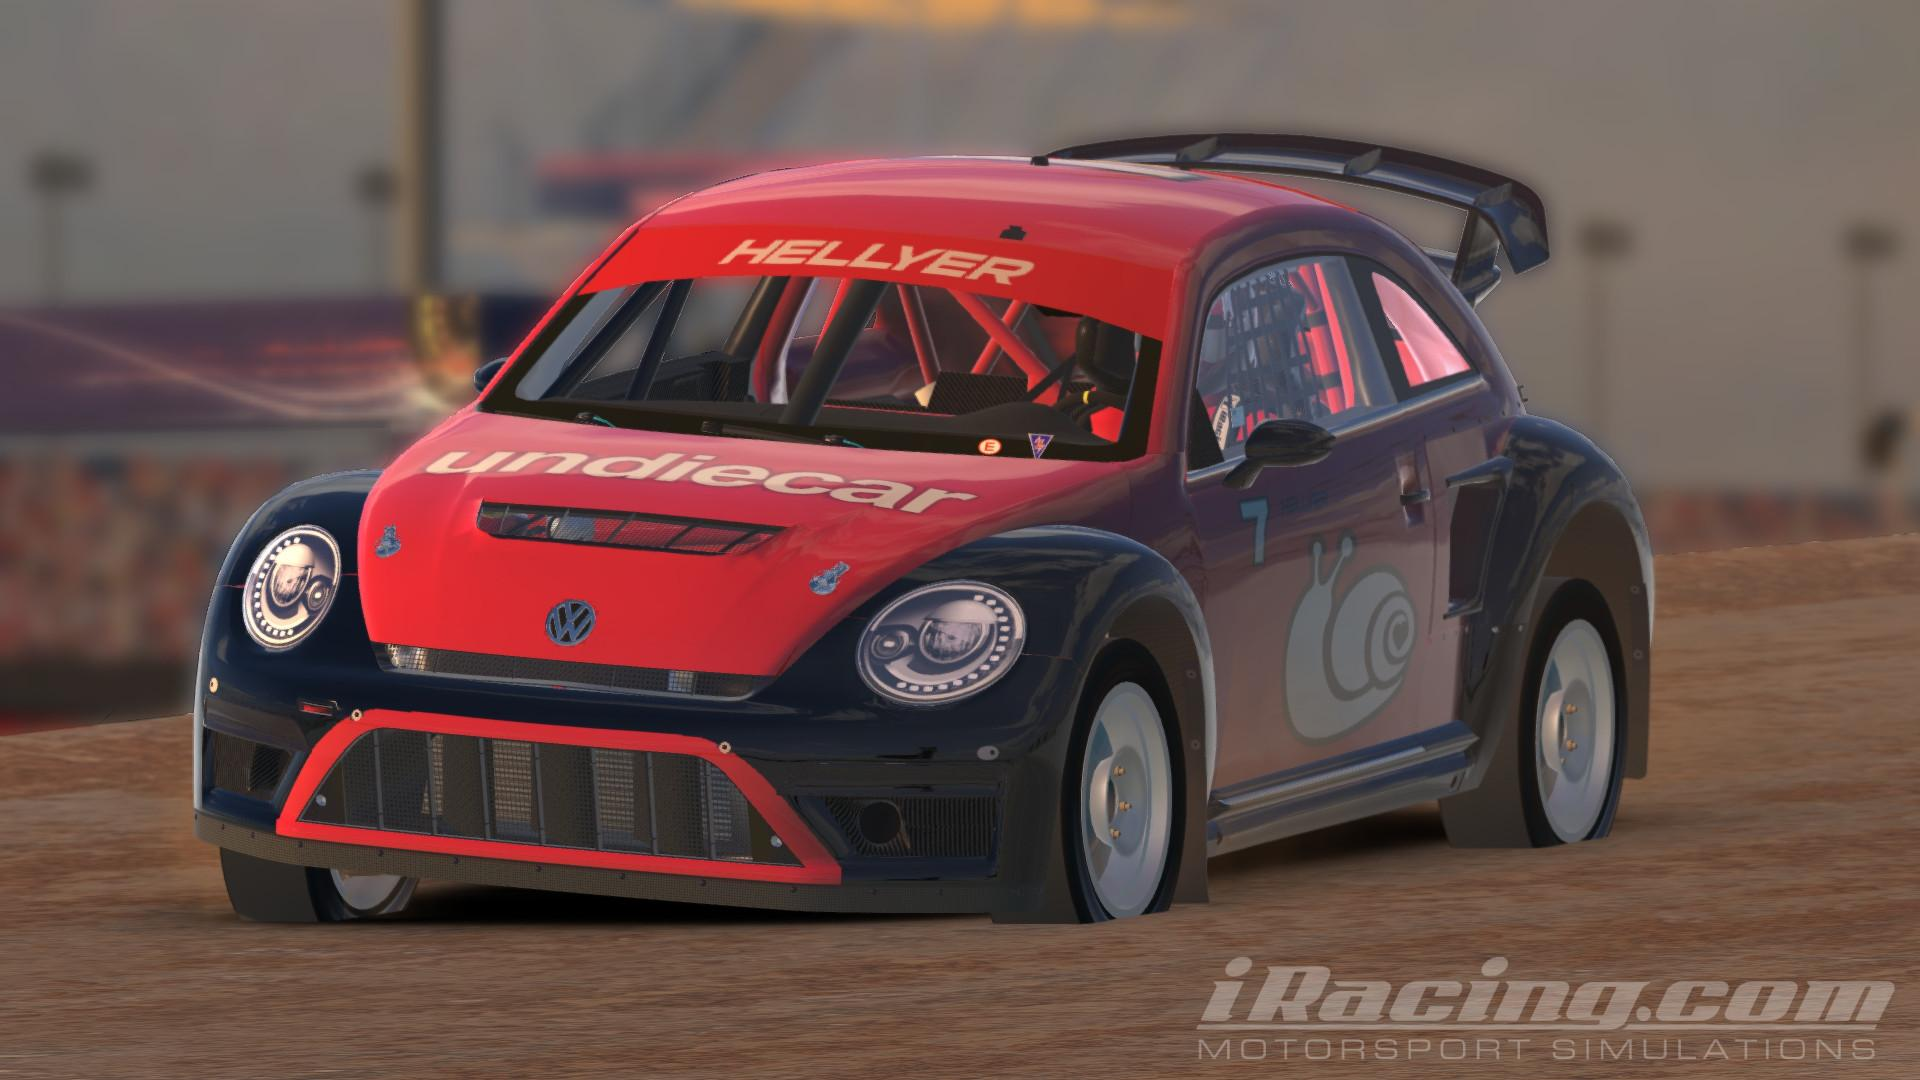 Preview of Undiecar VW by Ryan Hellyer